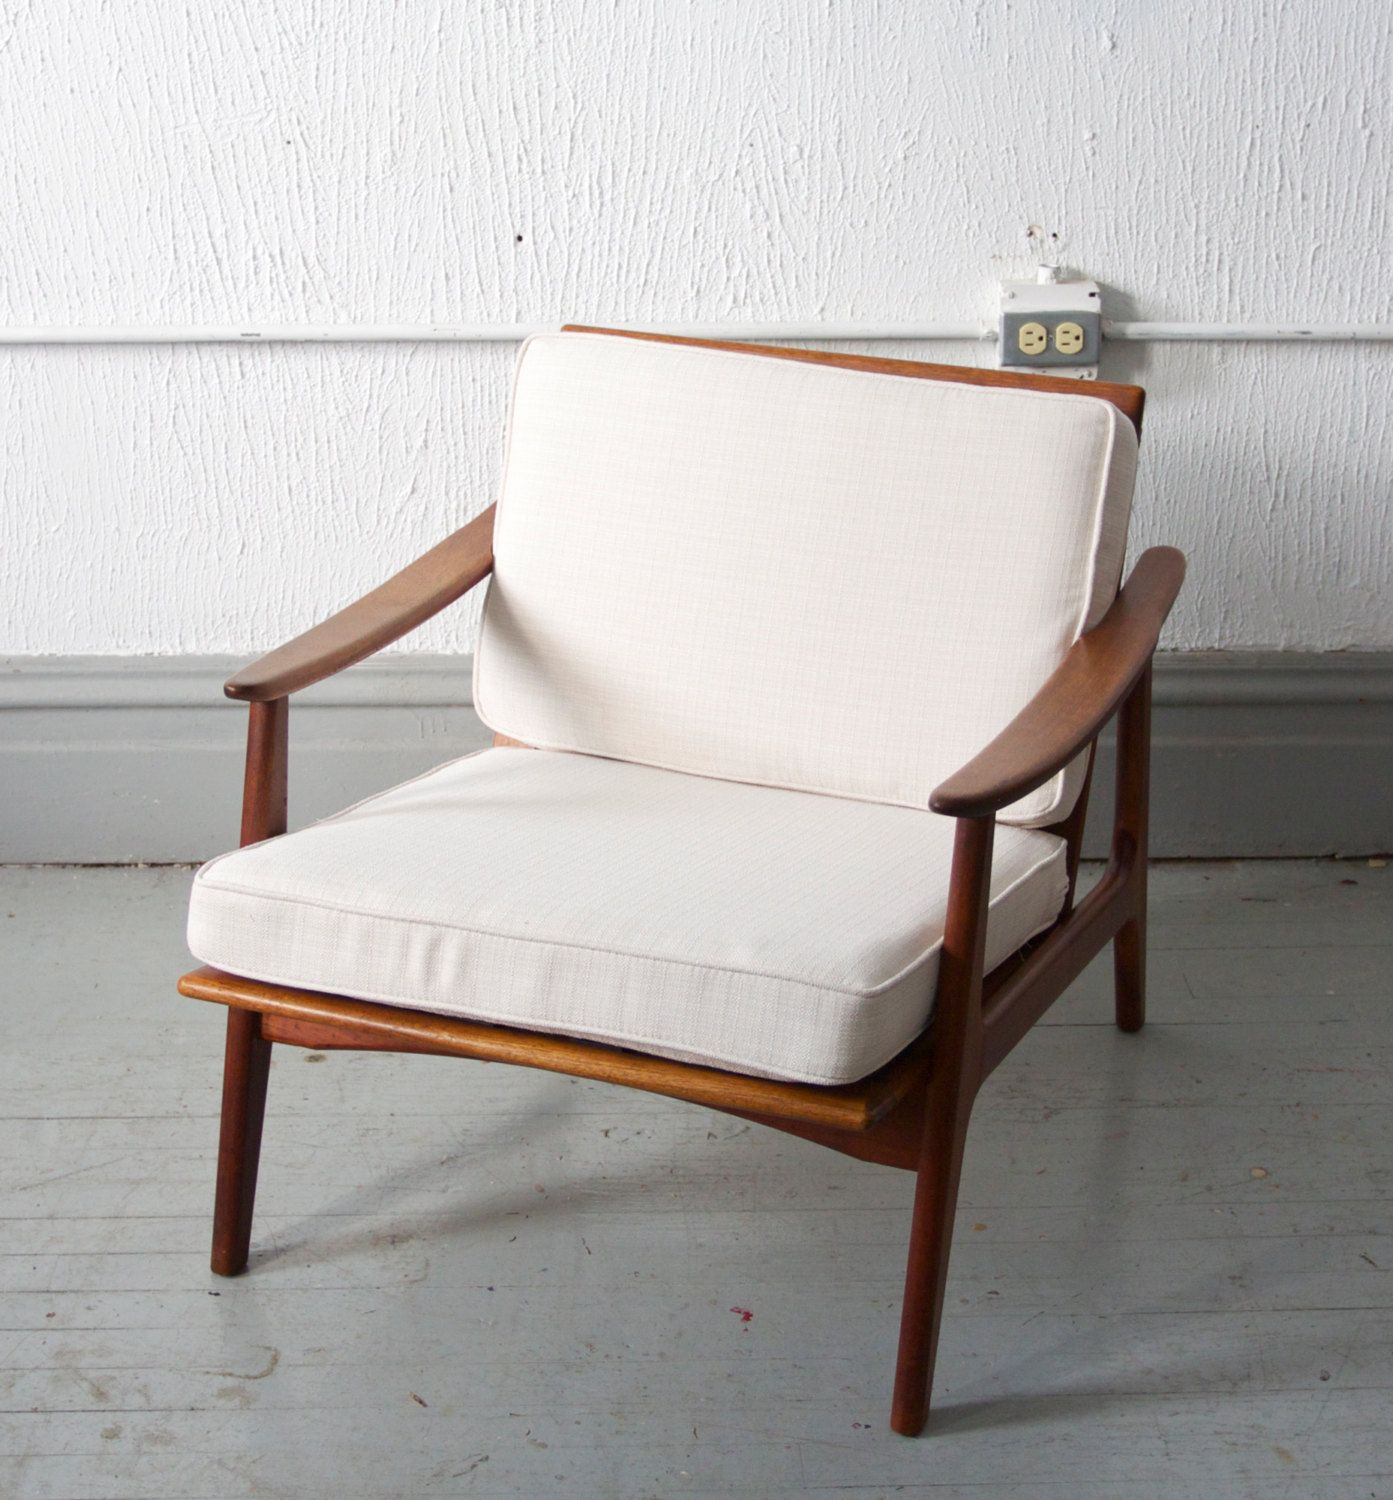 60s Style Furniture reserved mid century modern danish style lounge chair - 50s - 60s